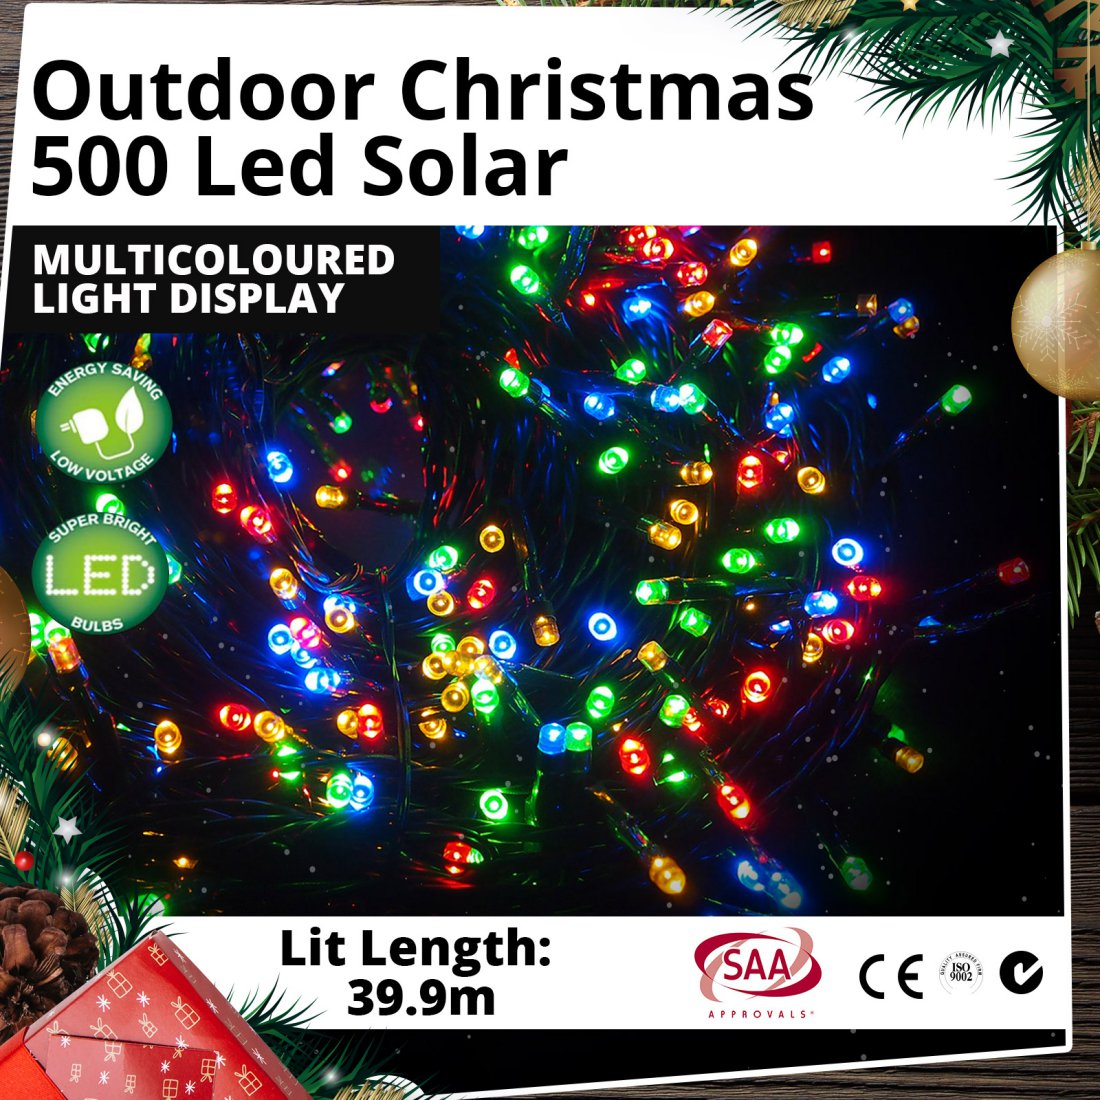 Outdoor 500 LED Solar Multicoloured Christmas Light Display